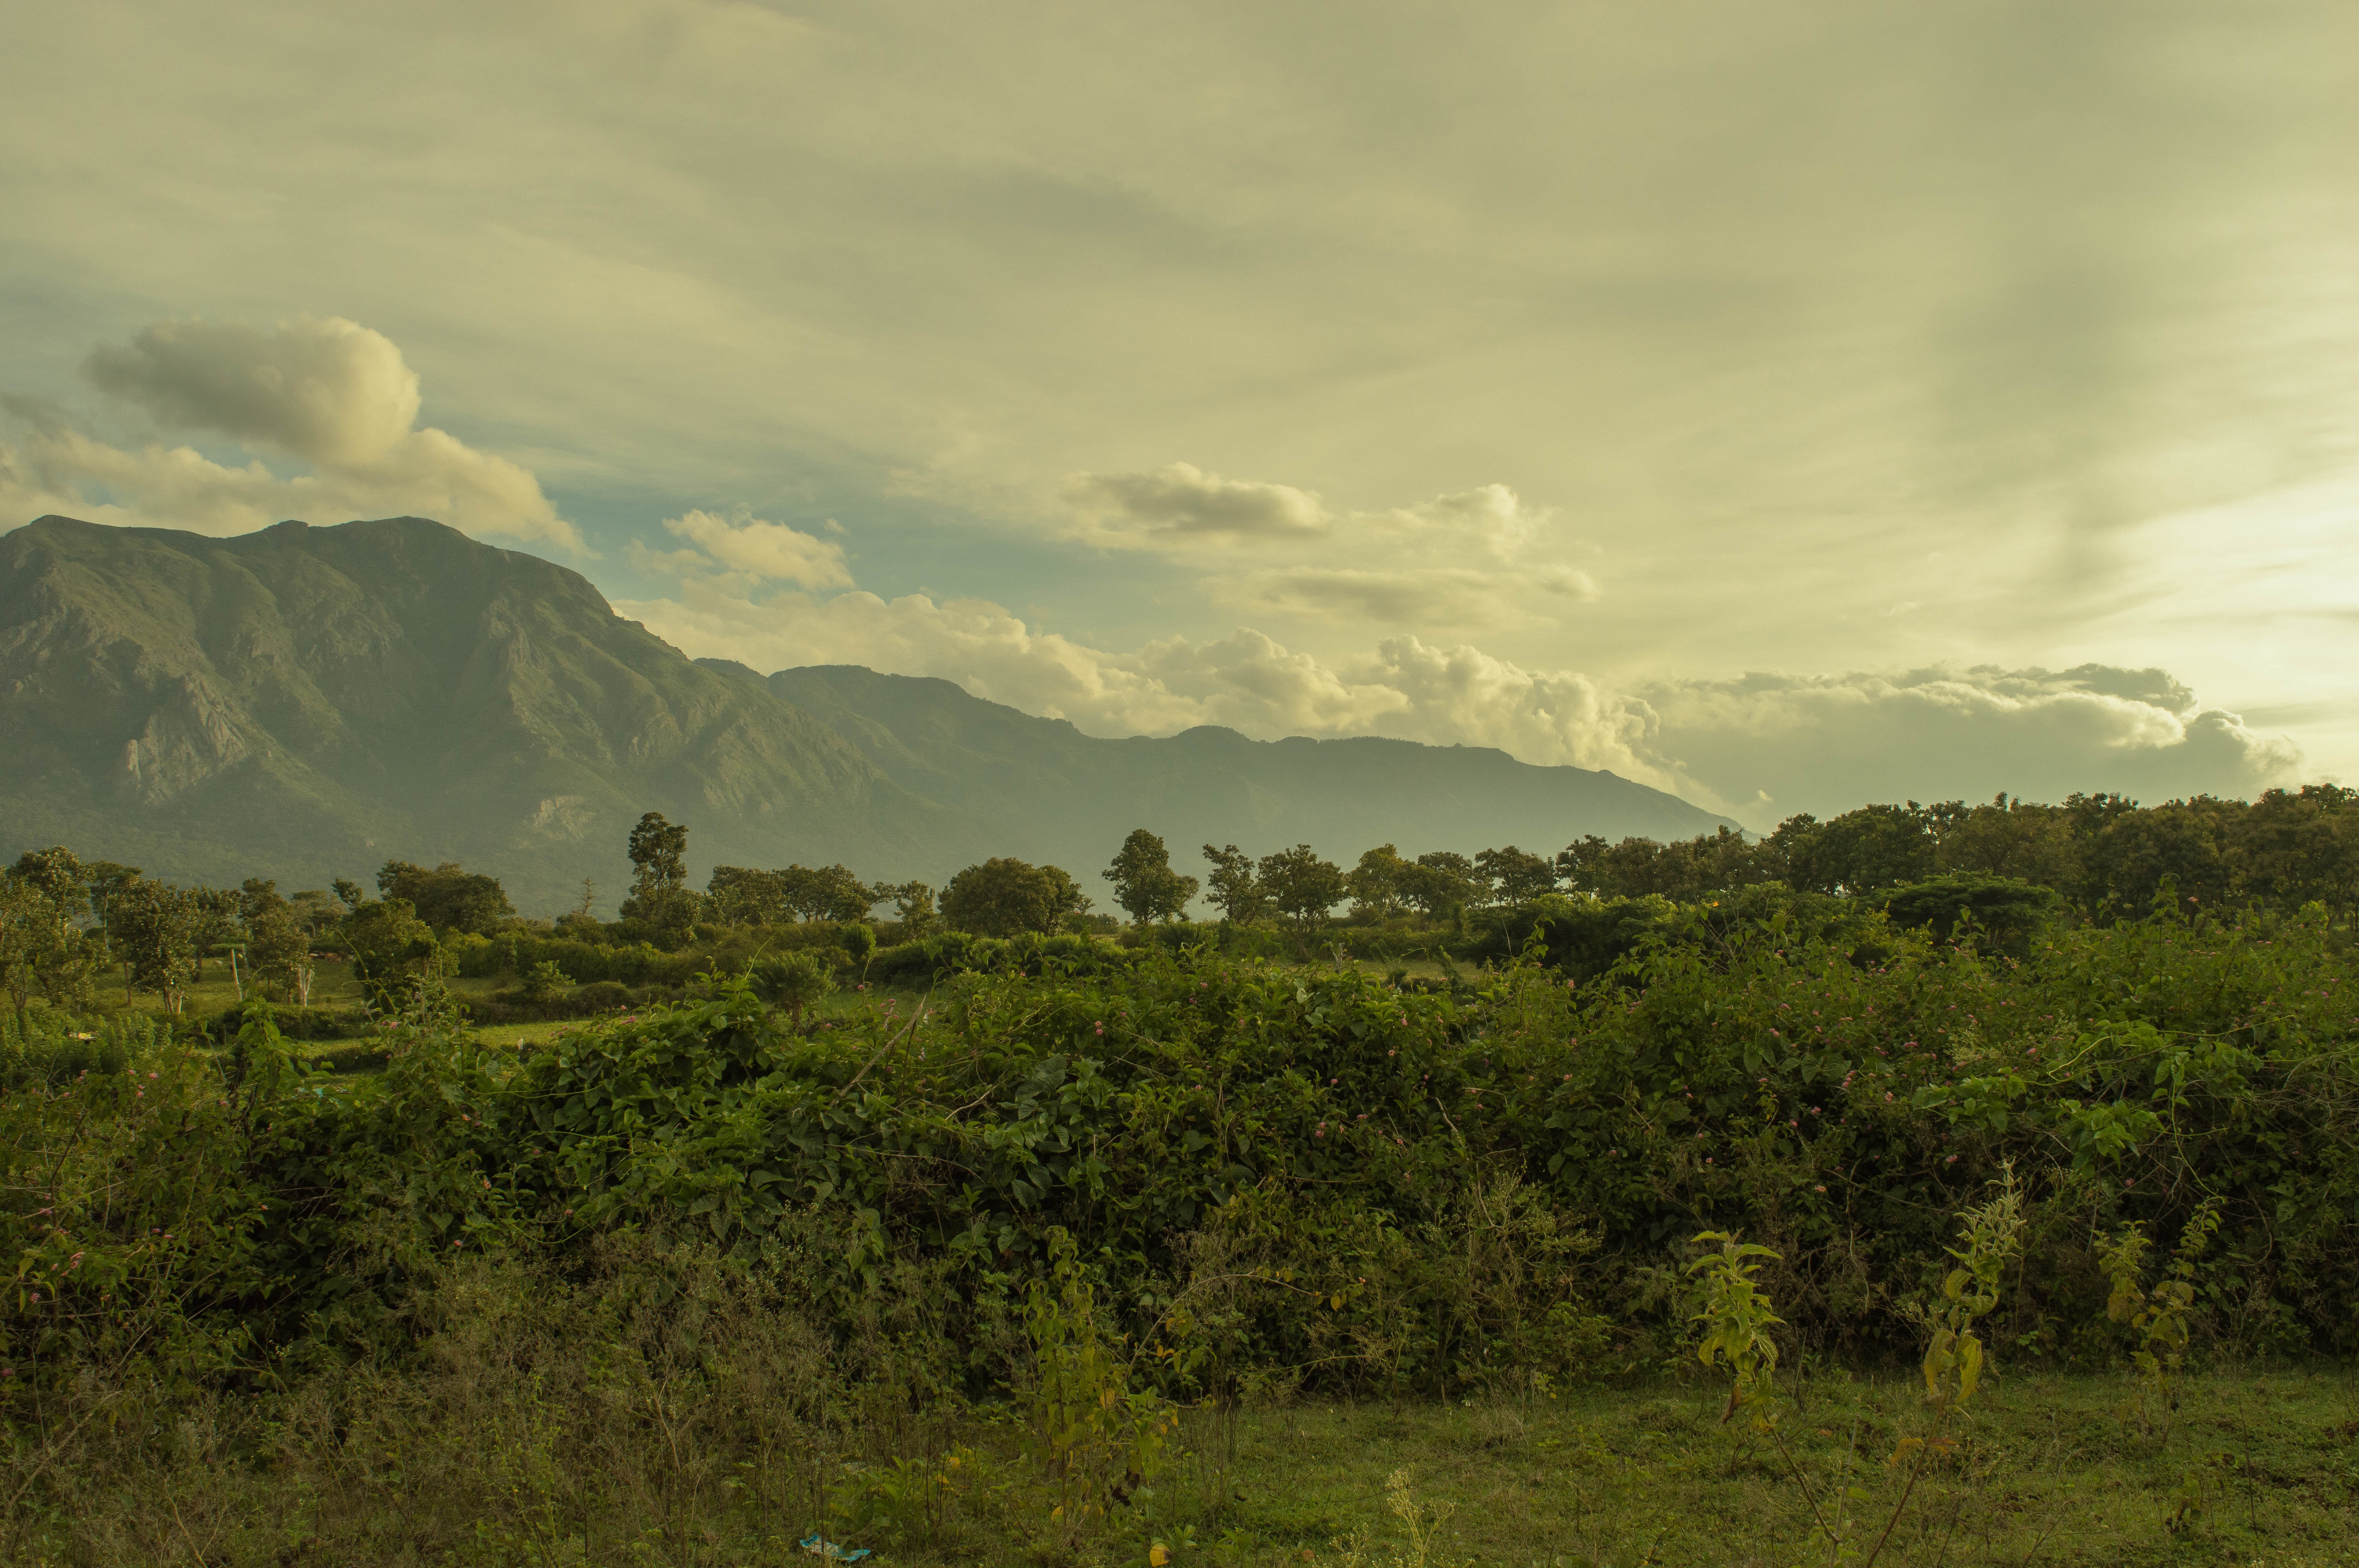 A verdant tropical forest with tall mountains on the horizon